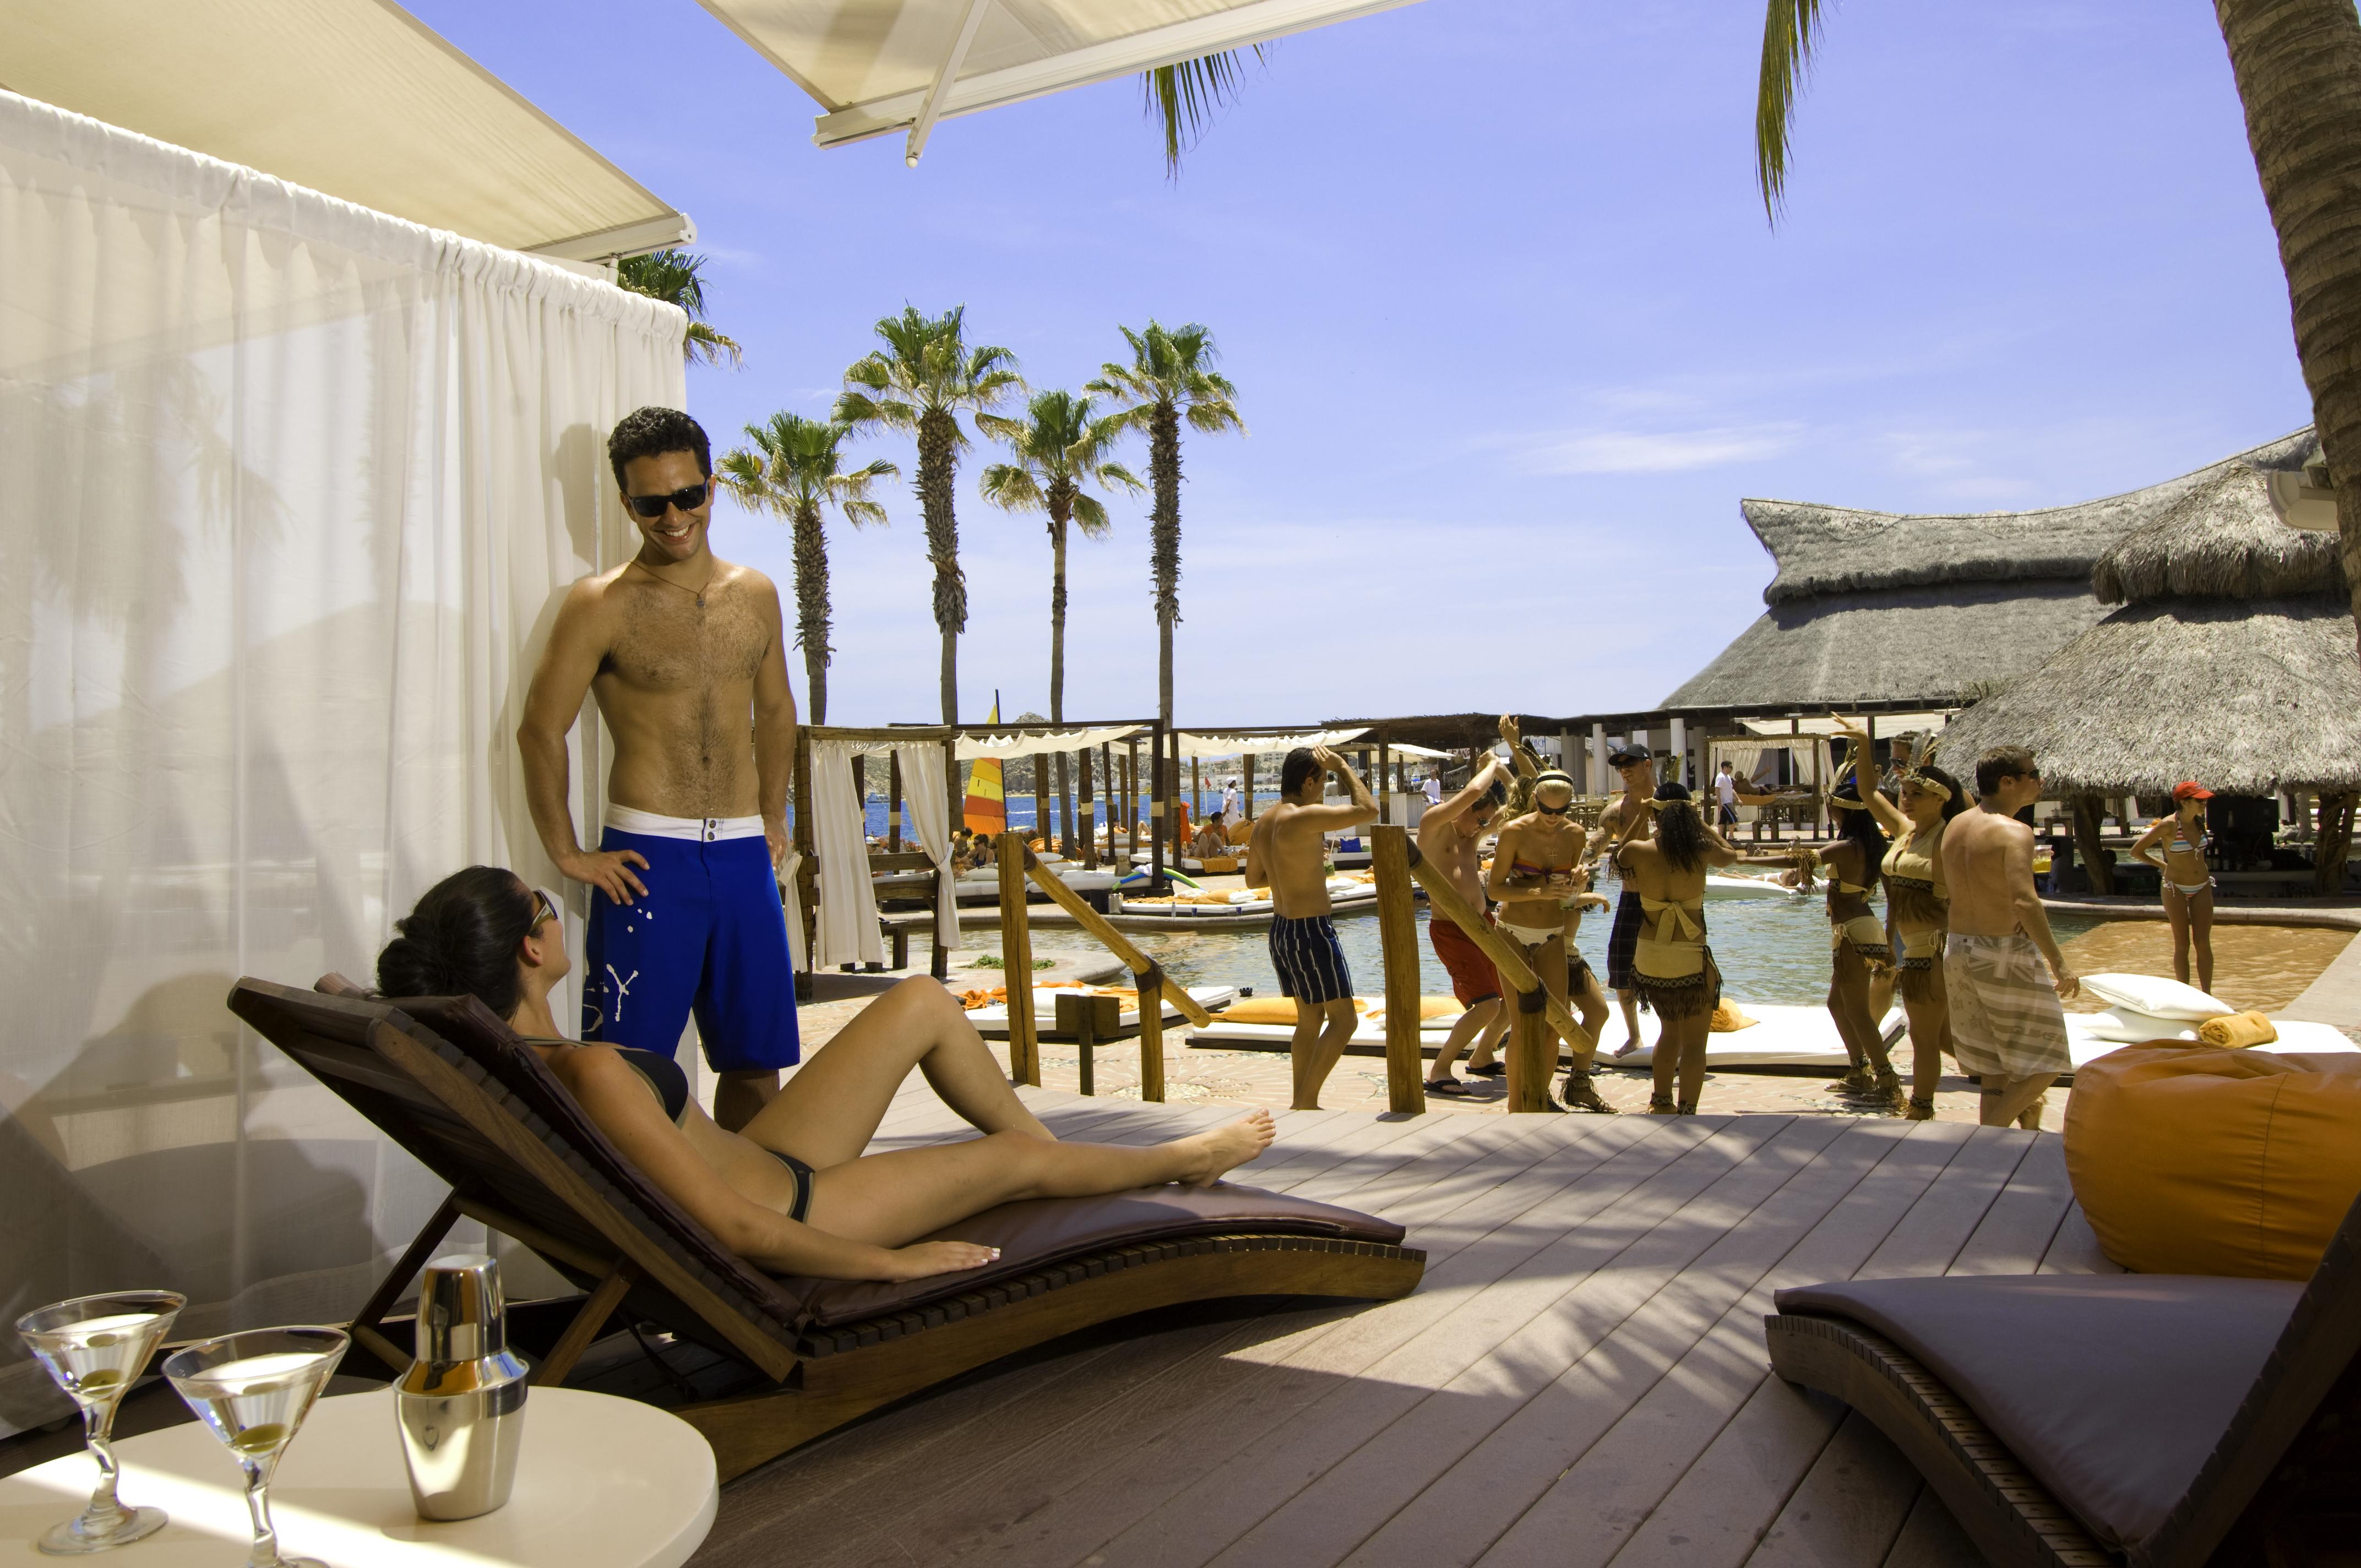 Best all inclusive resorts in mexico for young adults for Best all inclusives in mexico for couples